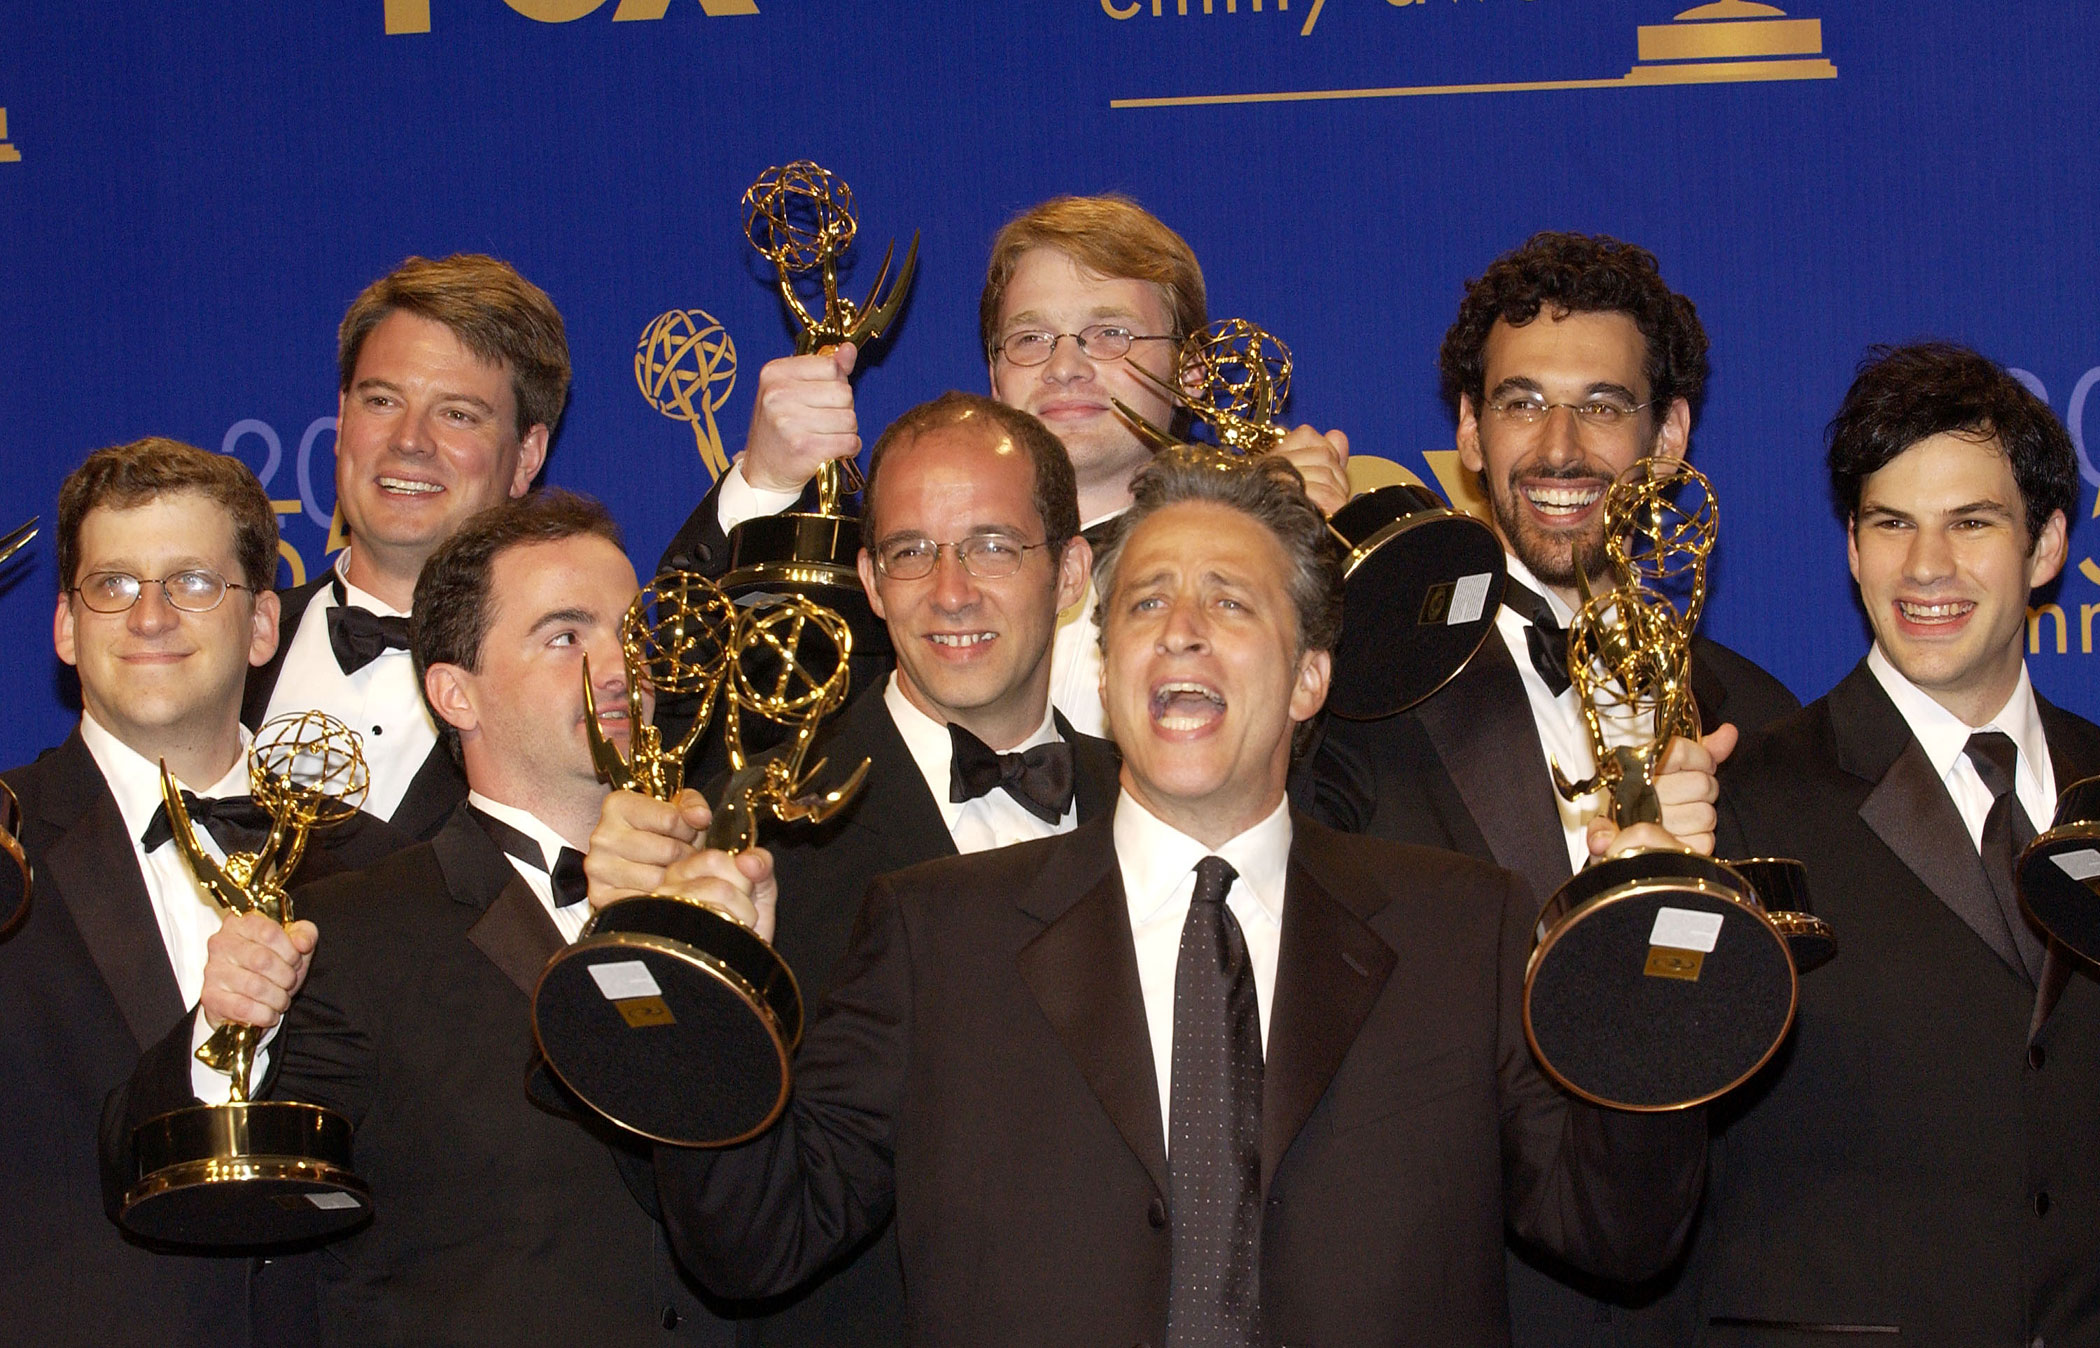 Jon Stewart and his team win the first of many Emmys for <i>The Daily Show</i> in 2003.